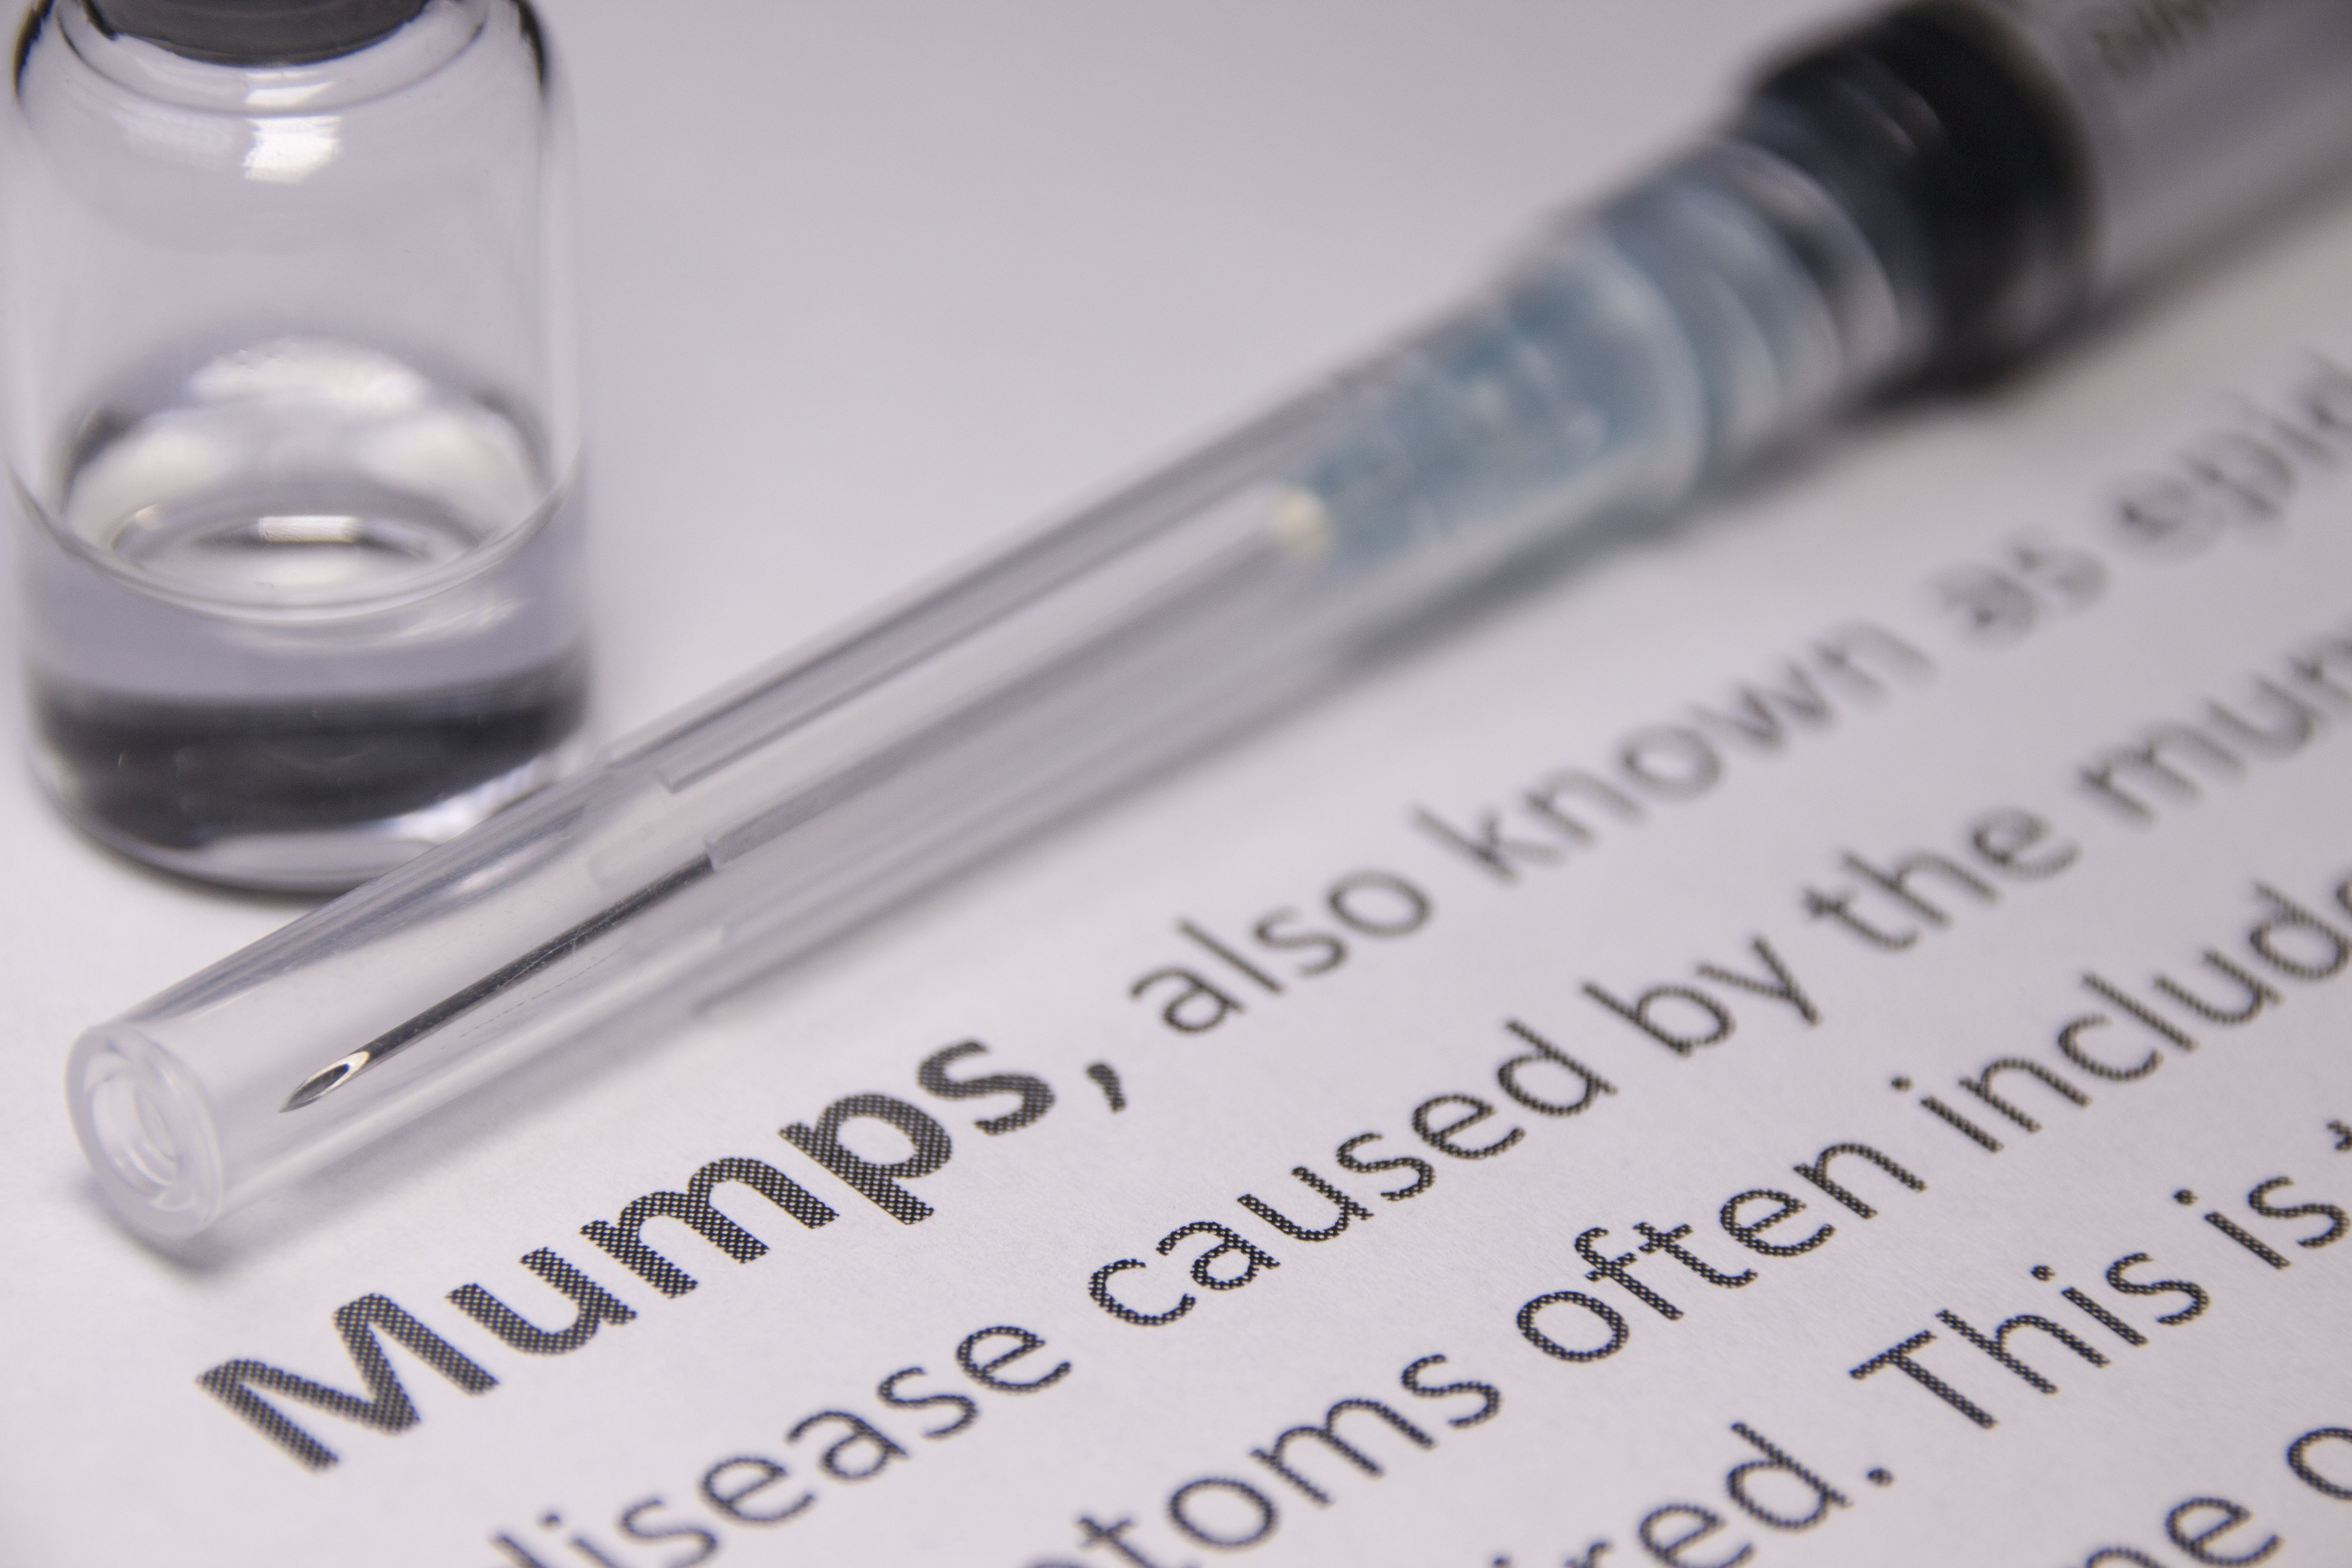 MMR vaccination on medical journal article about mumps